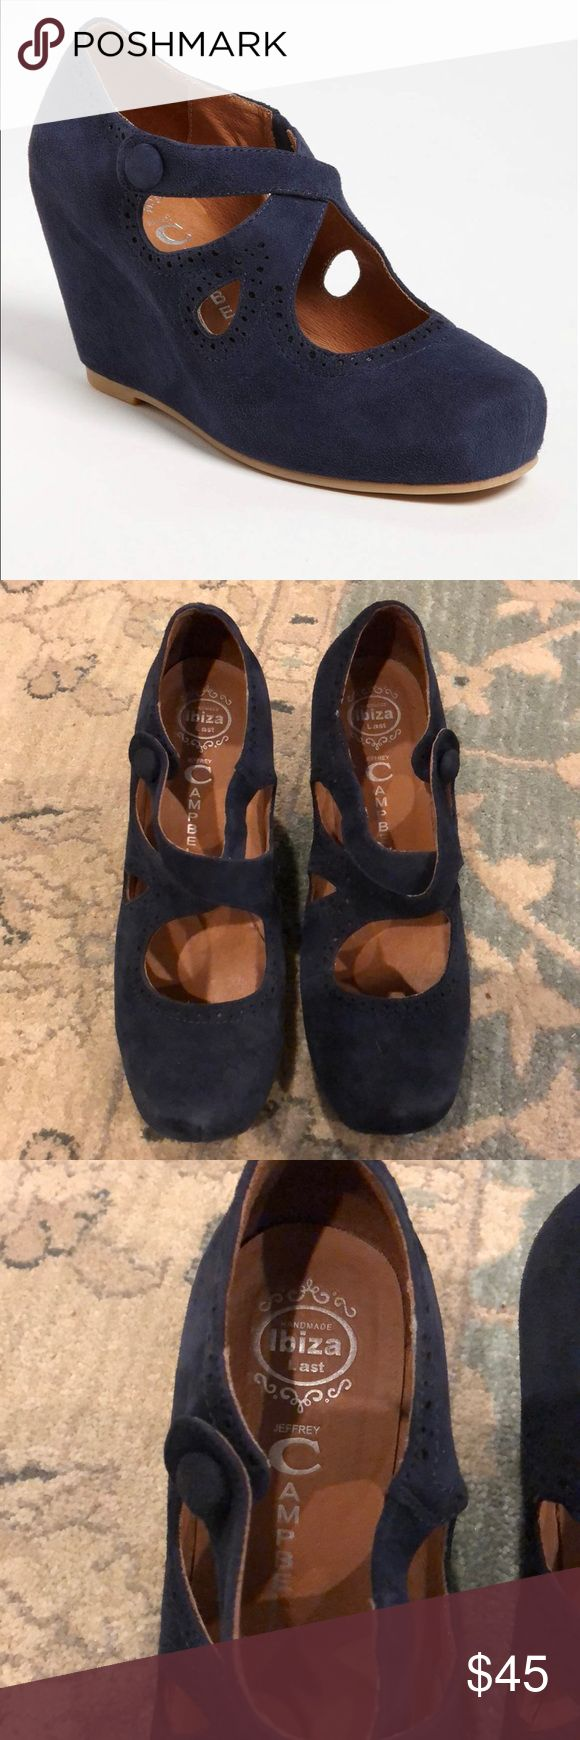 """Jeffrey Campbell Leigh Navy Wedges, 9.5 Very comfortable Jeffrey Campbell wedges. Worn and in good condition! Sold out!  Approx. heel height: 3"""" with 1/2"""" platform. Suede upper/leather lining/synthetic sole. By Jeffrey Campbell; imported. Jeffrey Campbell Shoes Wedges"""